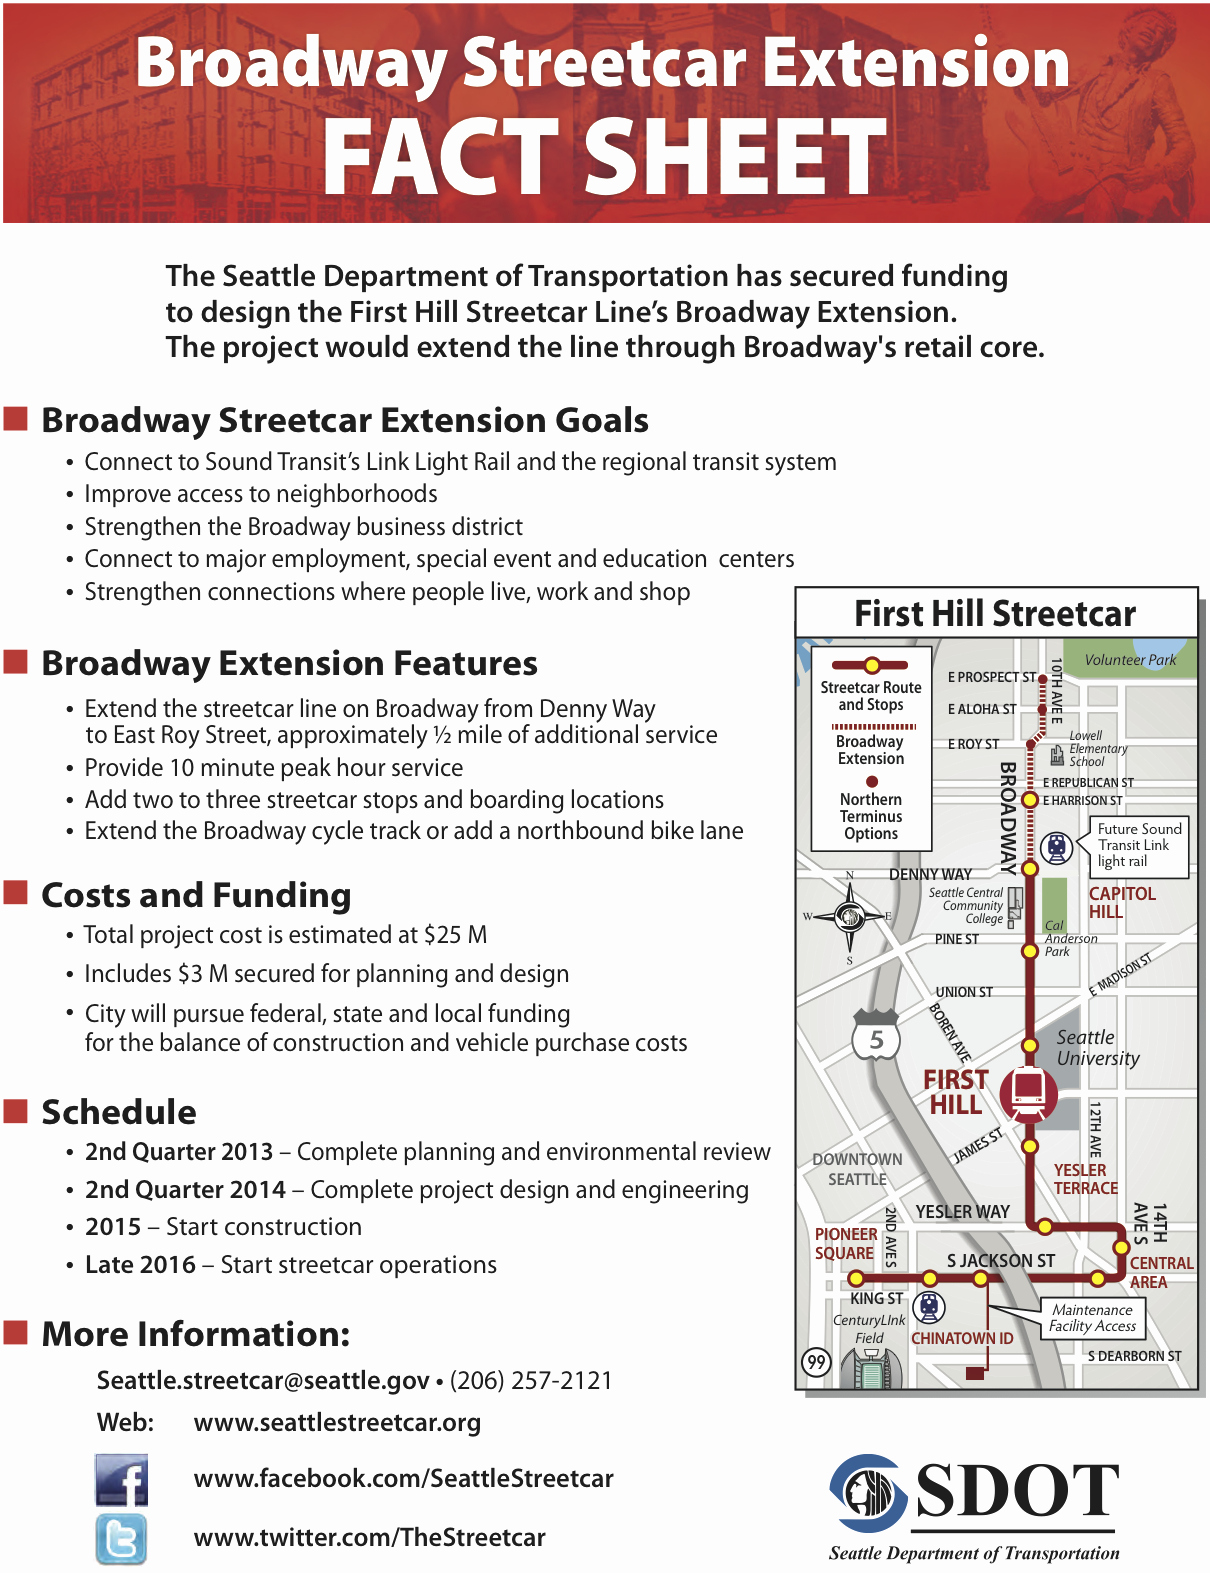 Free Fact Sheet Template Beautiful Broadway Streetcar Extention Will Include Cycle Track